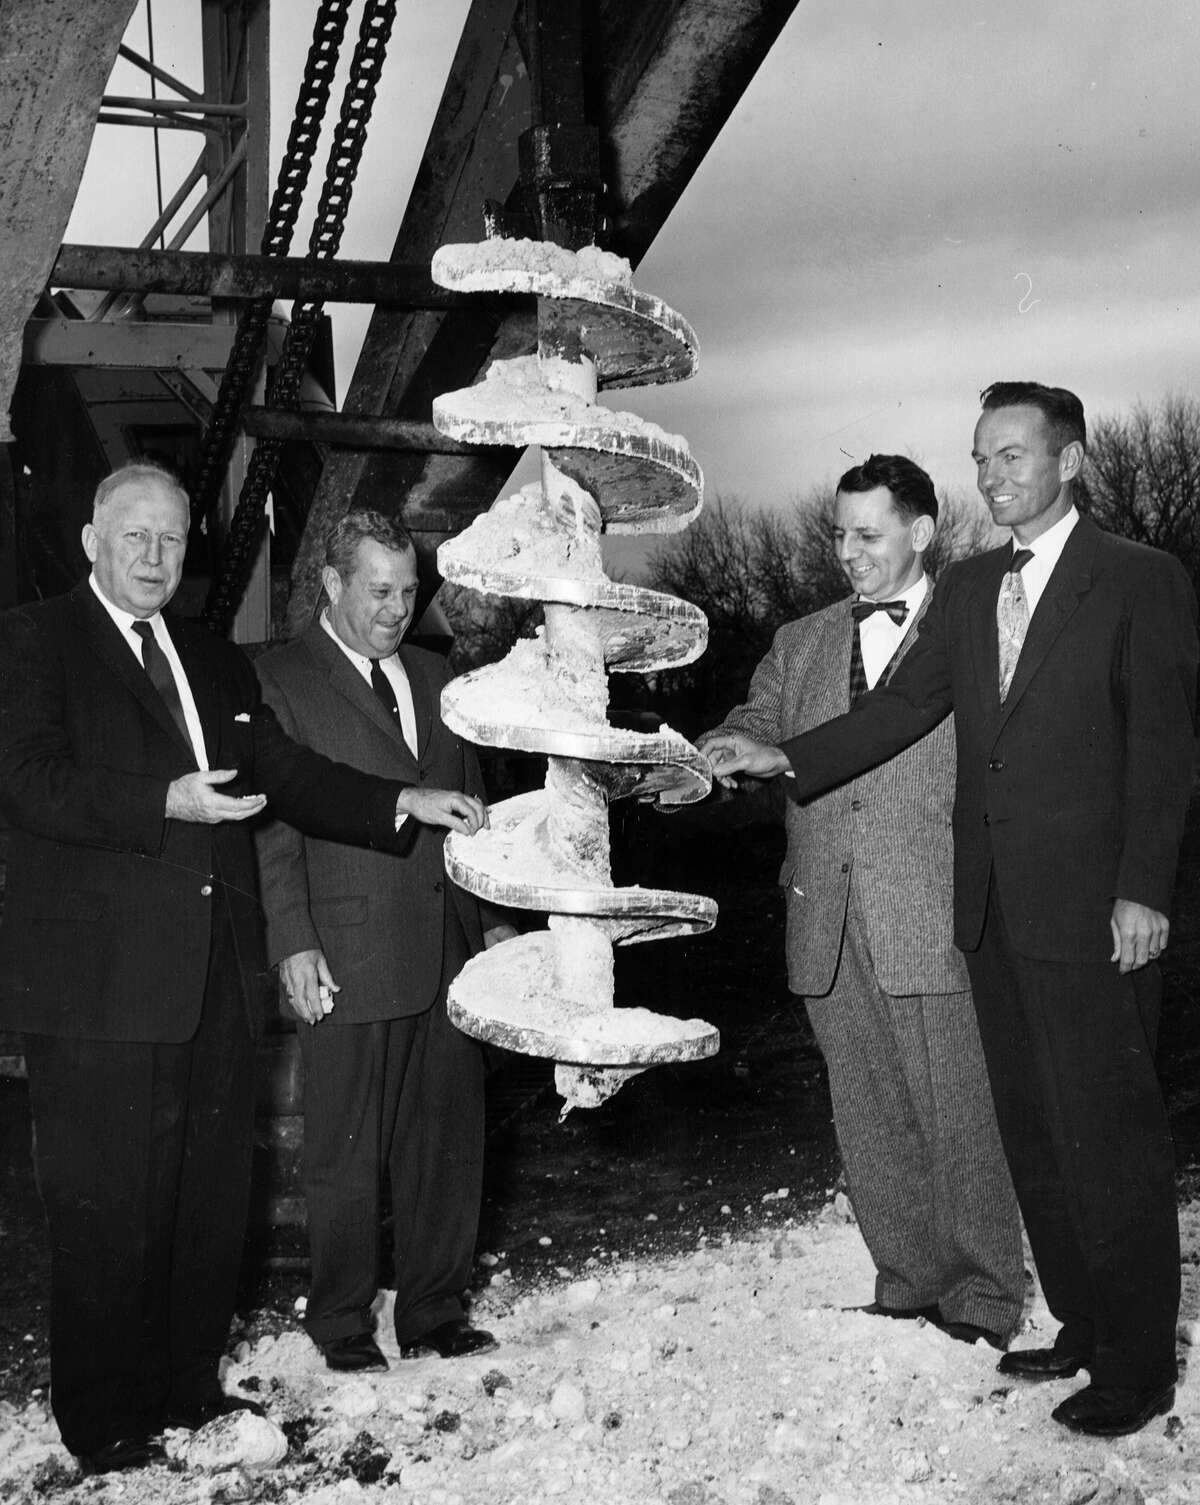 Officials prepare to break ground on a 25-acre tract of land - the future home of Methodist Hospital - on May 25, 1960. Originally known as Southwest Texas Methodist Hospital, it was the first institution to be built in San Antonio's South Texas Medical Center.